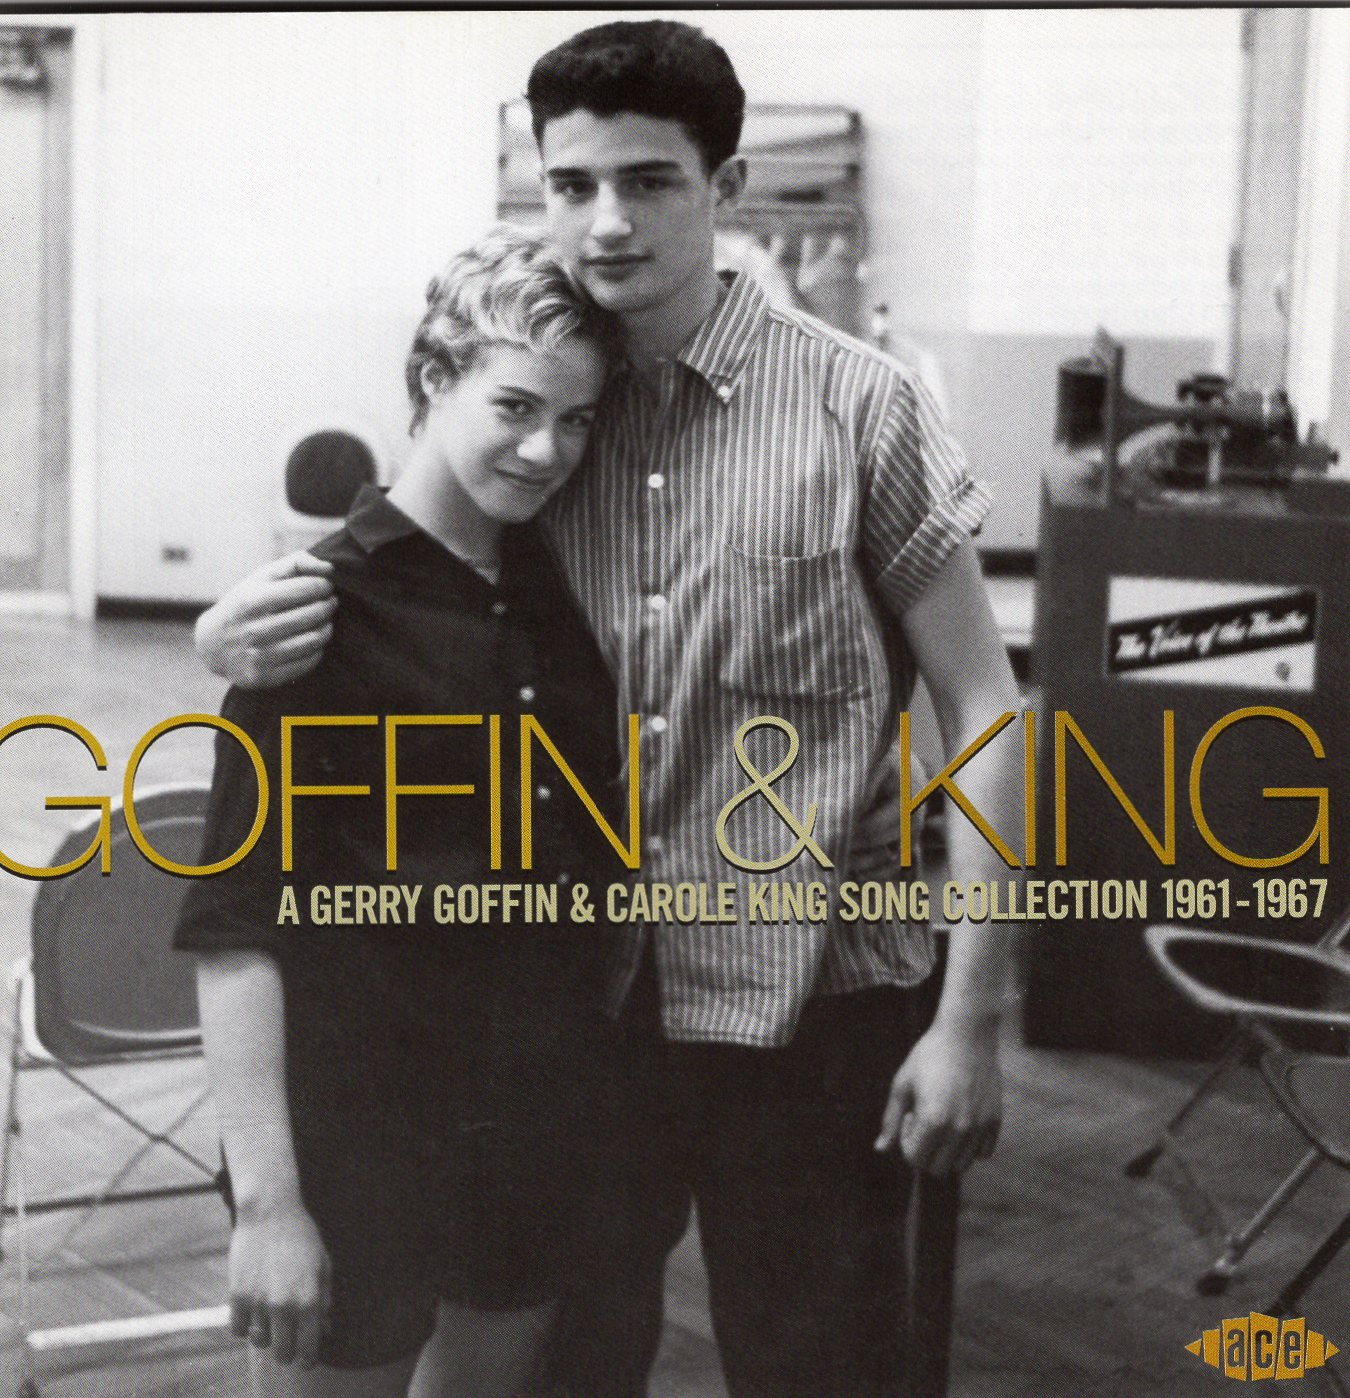 """Goffin & King: A Gerry Goffin and Carole King Song Collection 1961-1967"" Carole King, Gerry Goffin"